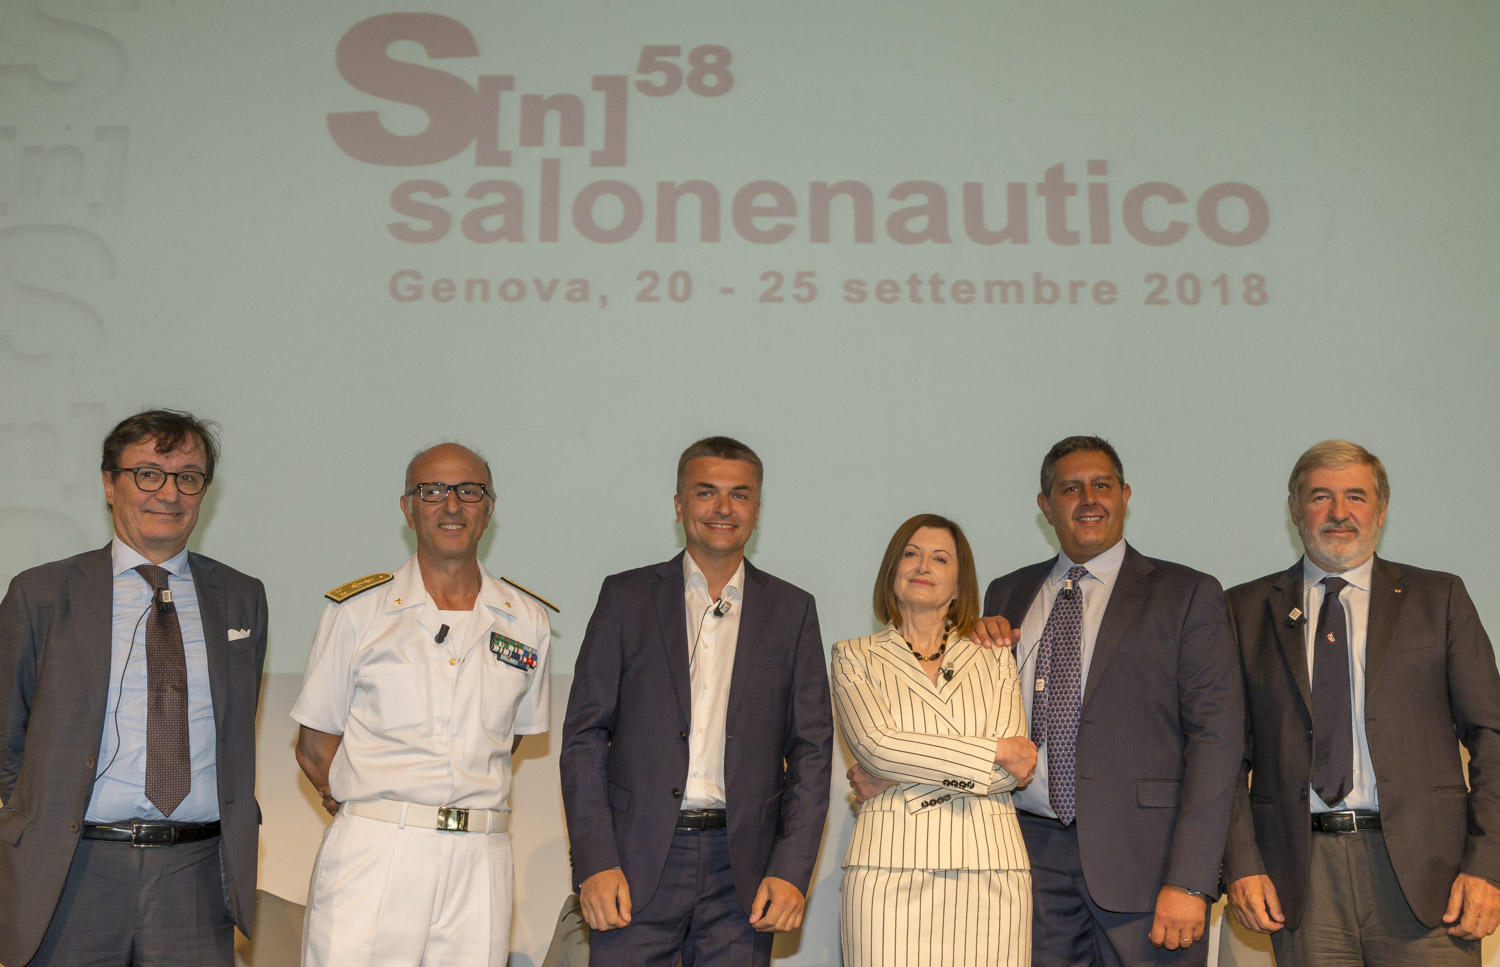 Genoa International Boat Show 2018